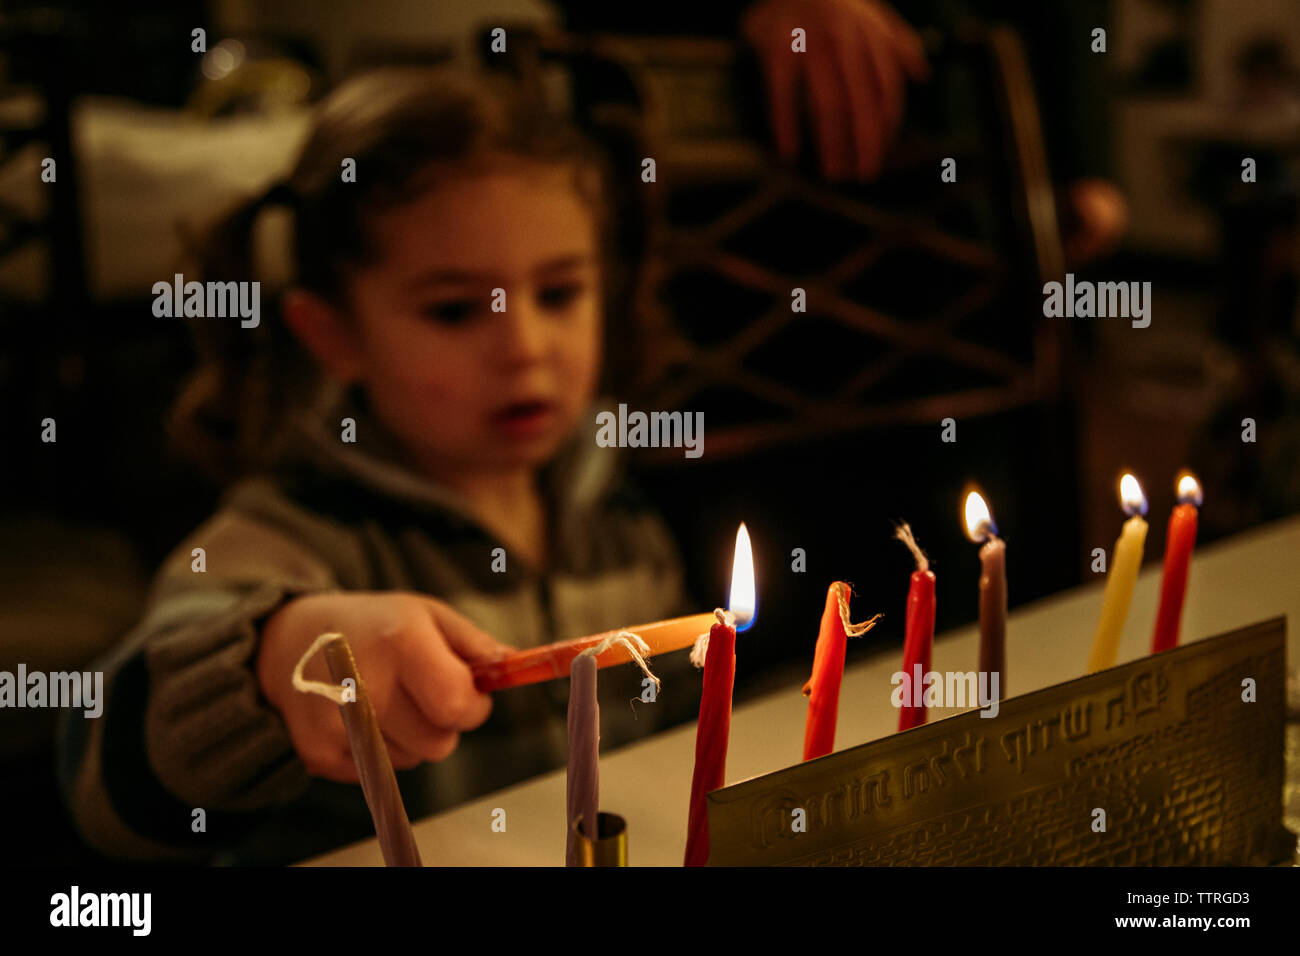 Close-up of girl igniting candles during Chanukah - Stock Image